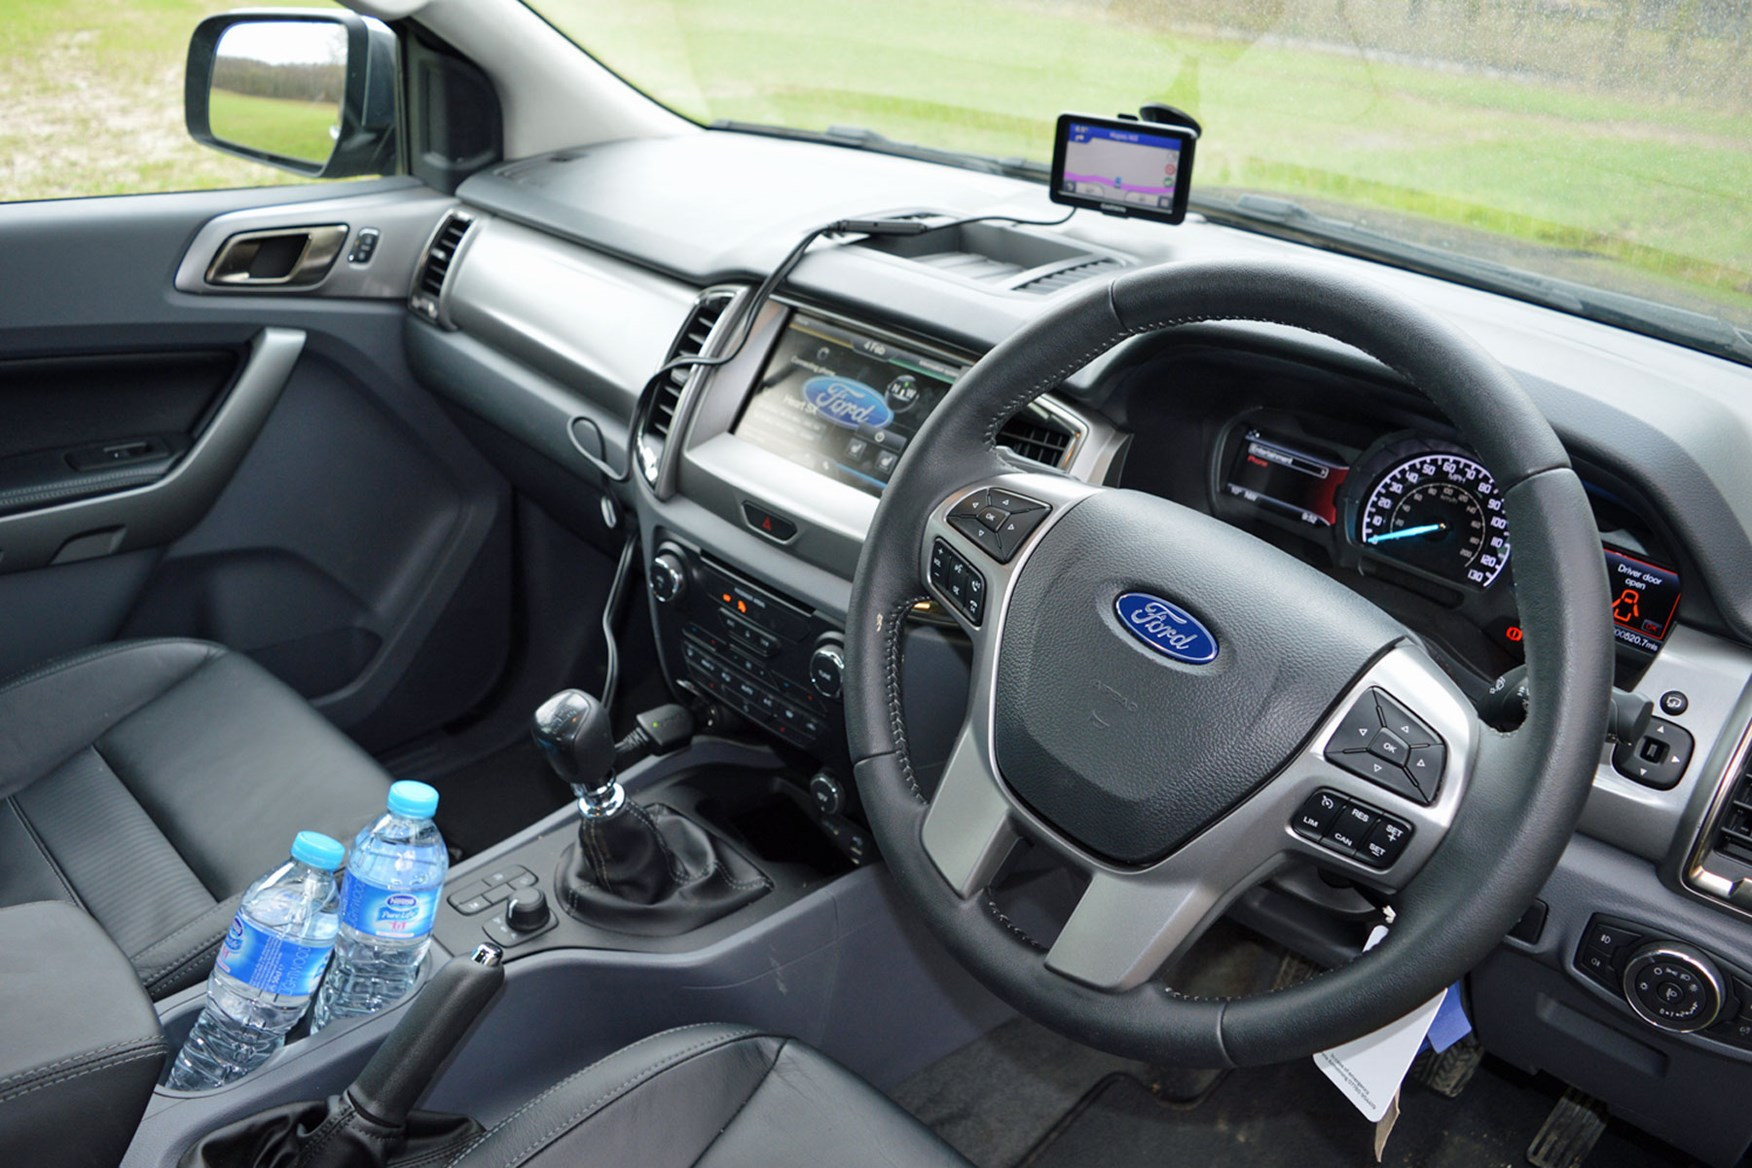 Ford Ranger Limited 3.2 Euro 5 review - cab interior